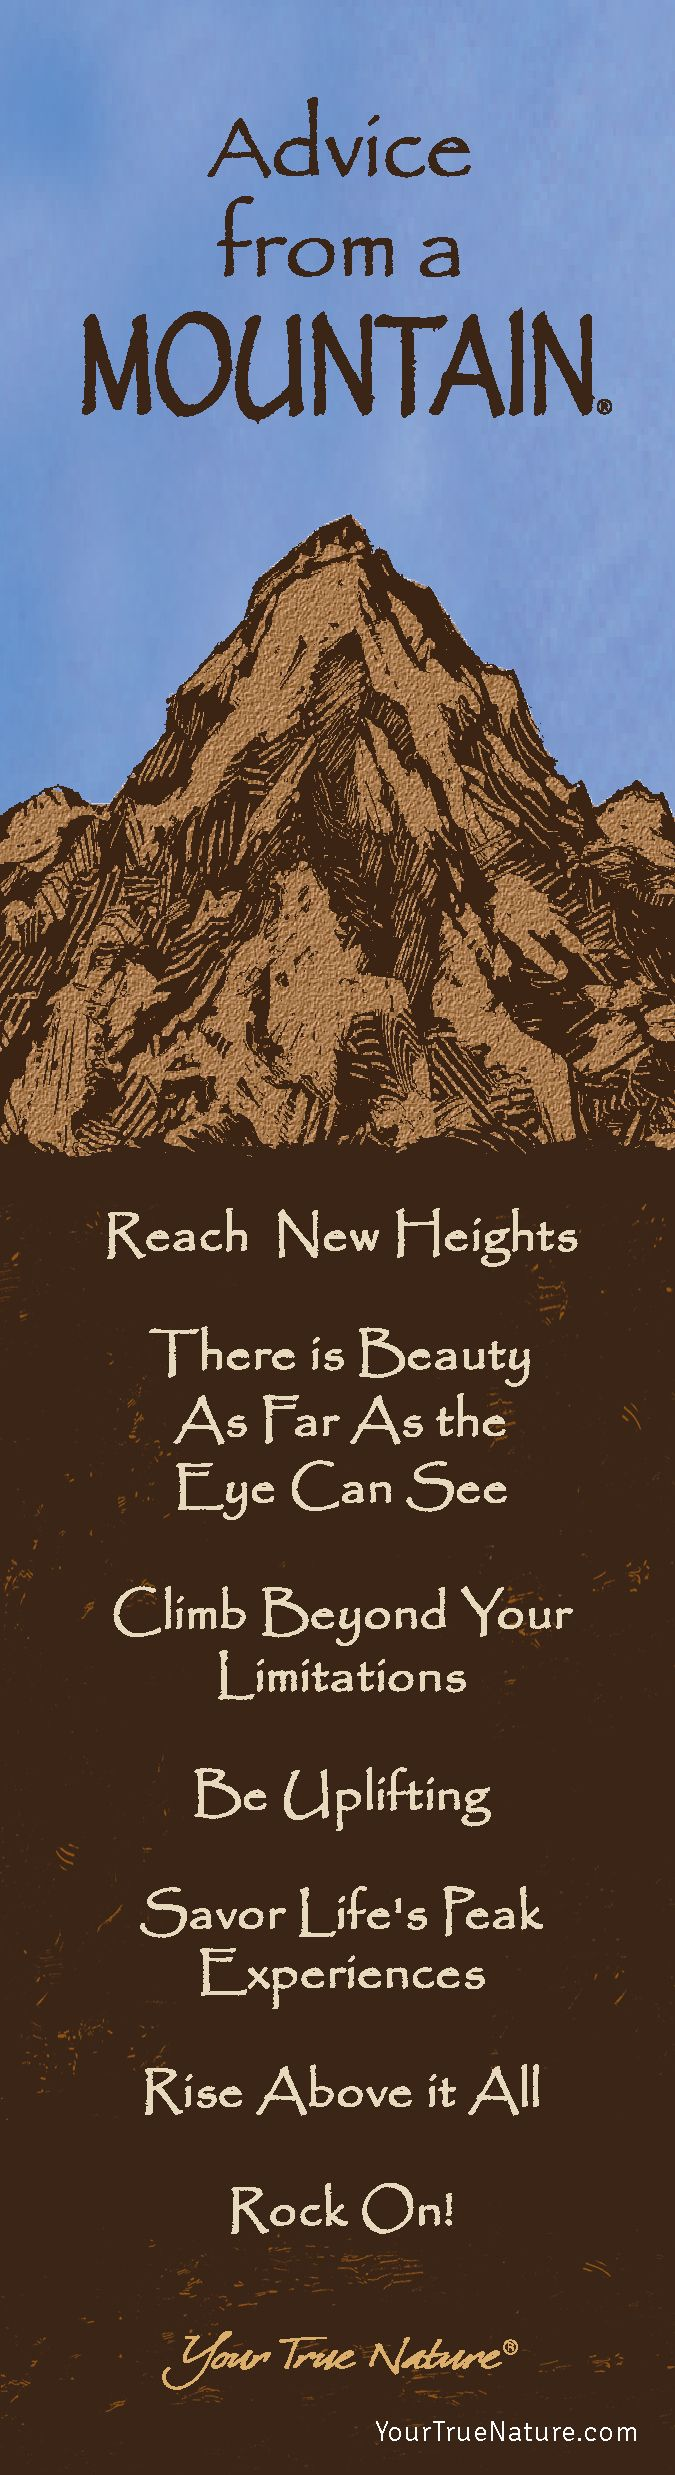 """""""There is beauty as far as the eye can see."""" Advice from a Mountain. Your True Nature"""